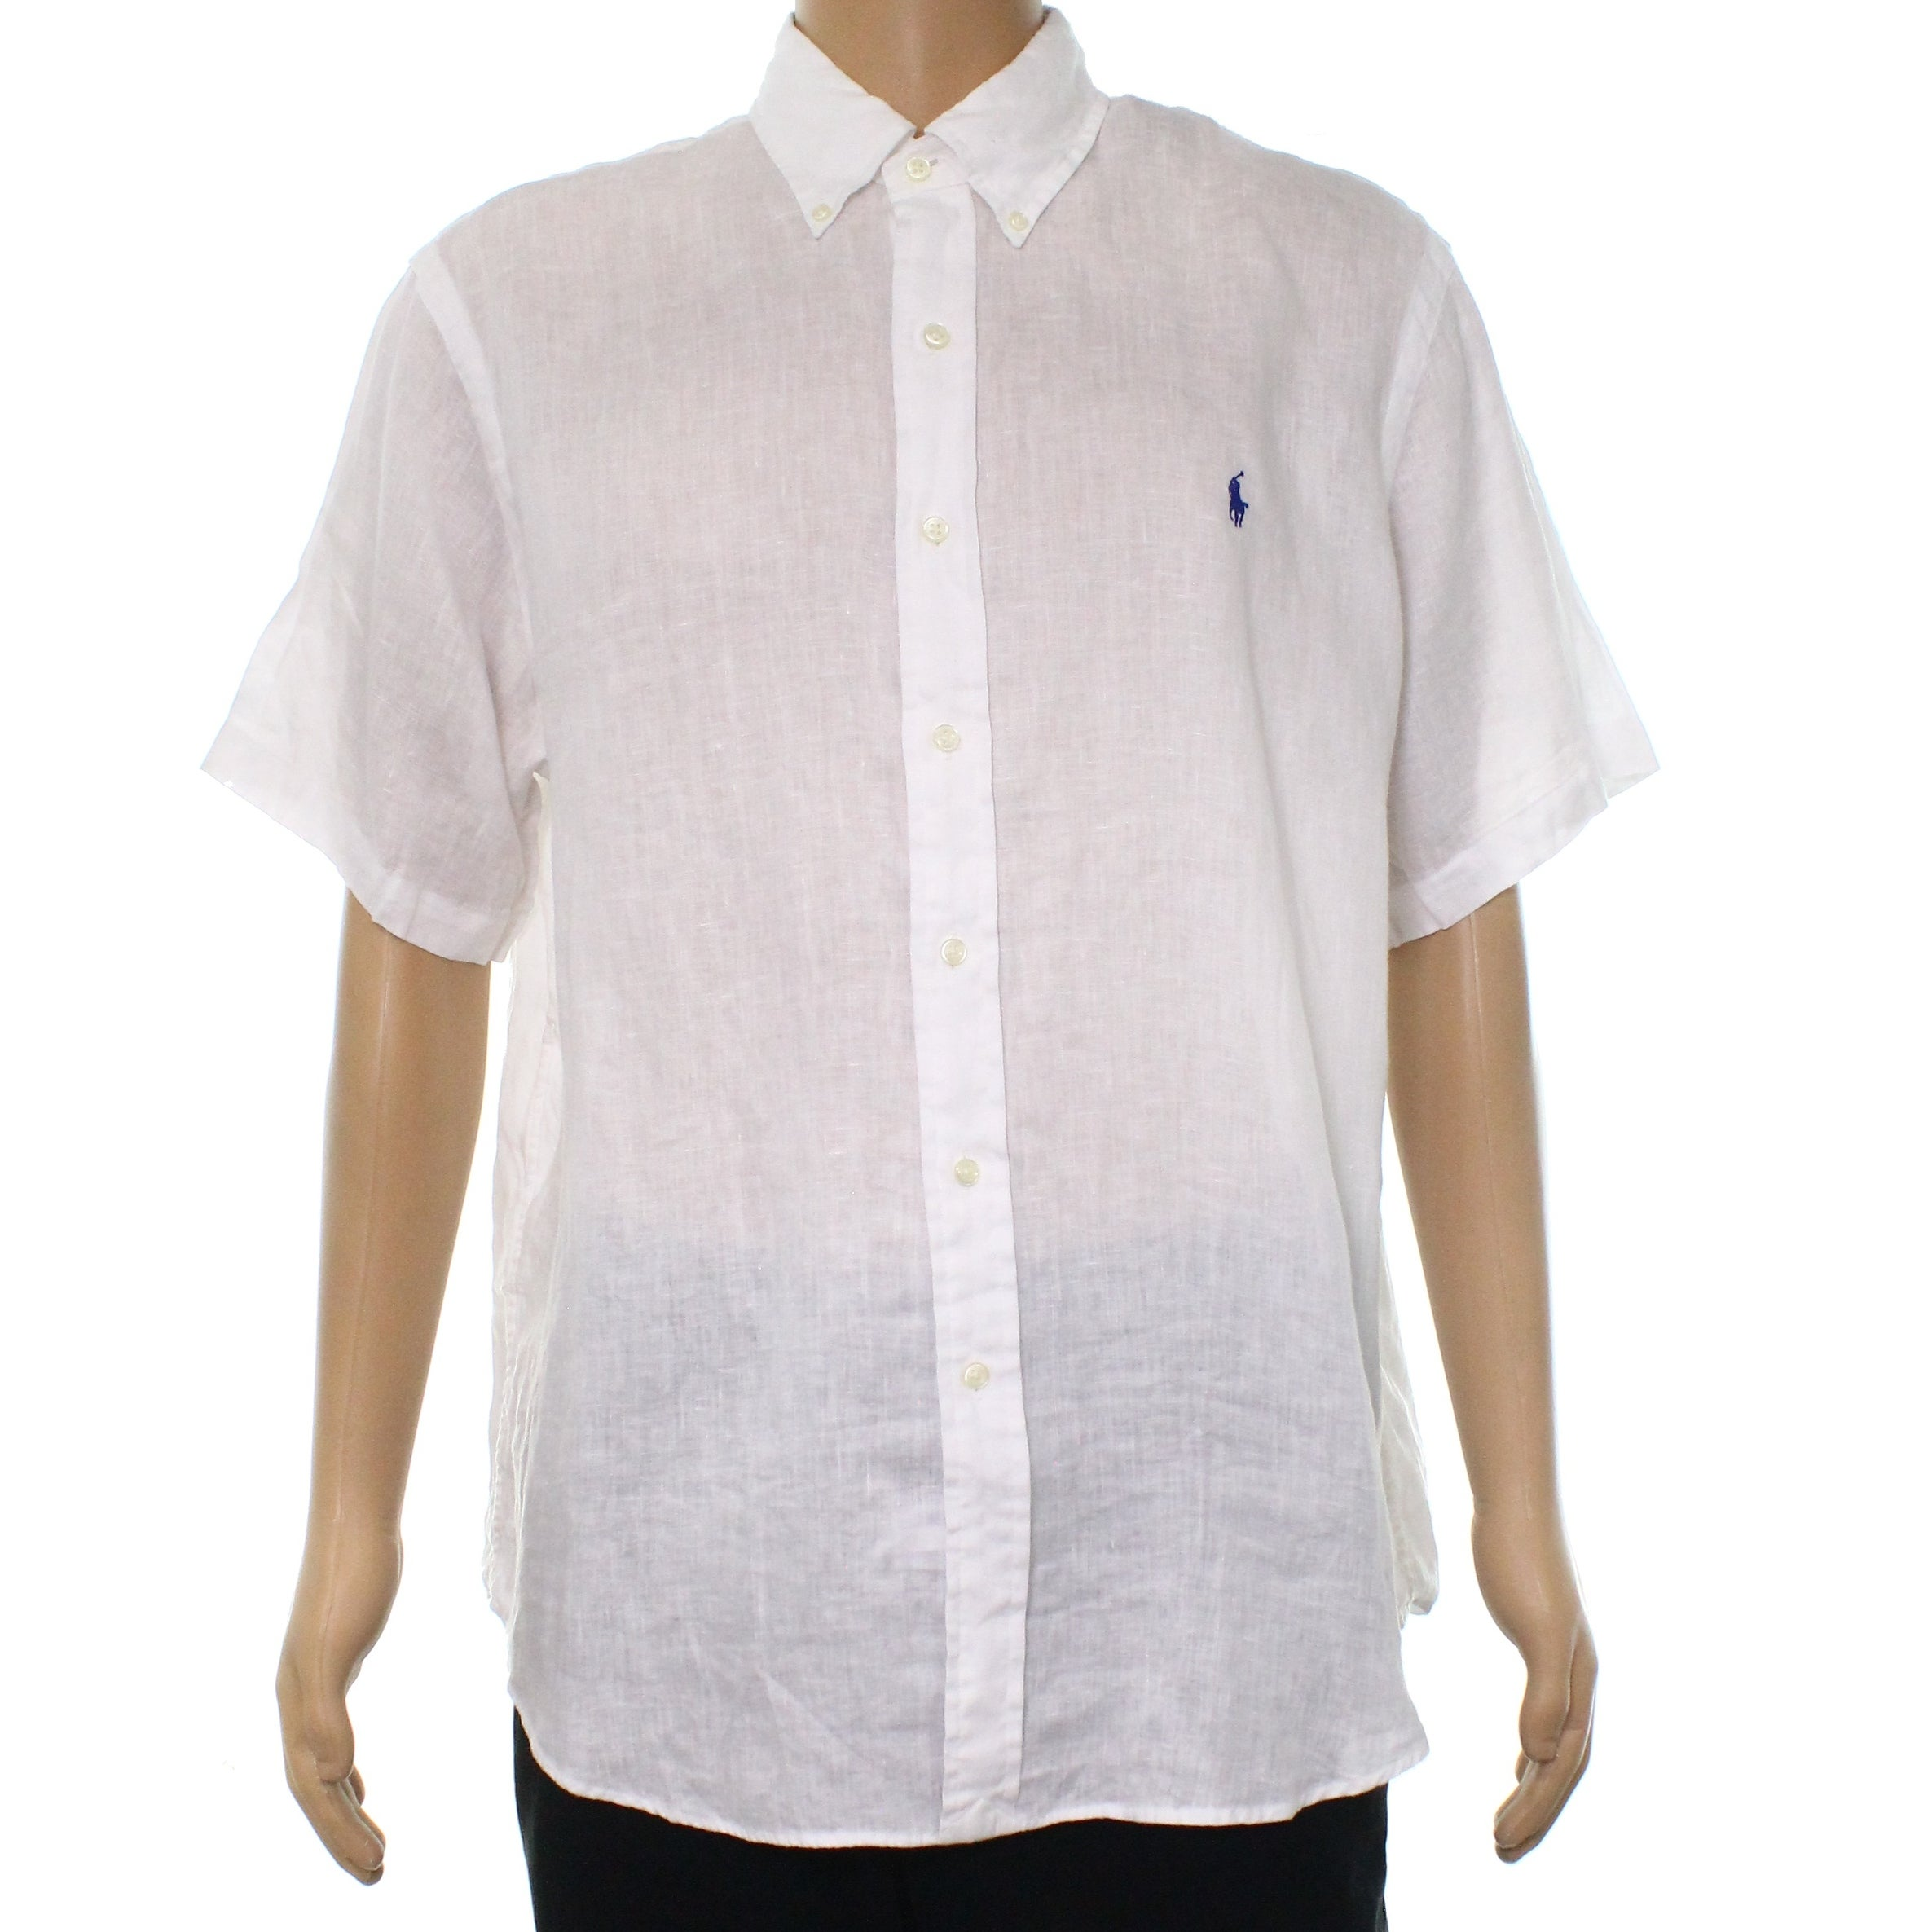 e4c4abfb9 Ralph Lauren Mens White Button Down Shirt – EDGE Engineering and ...